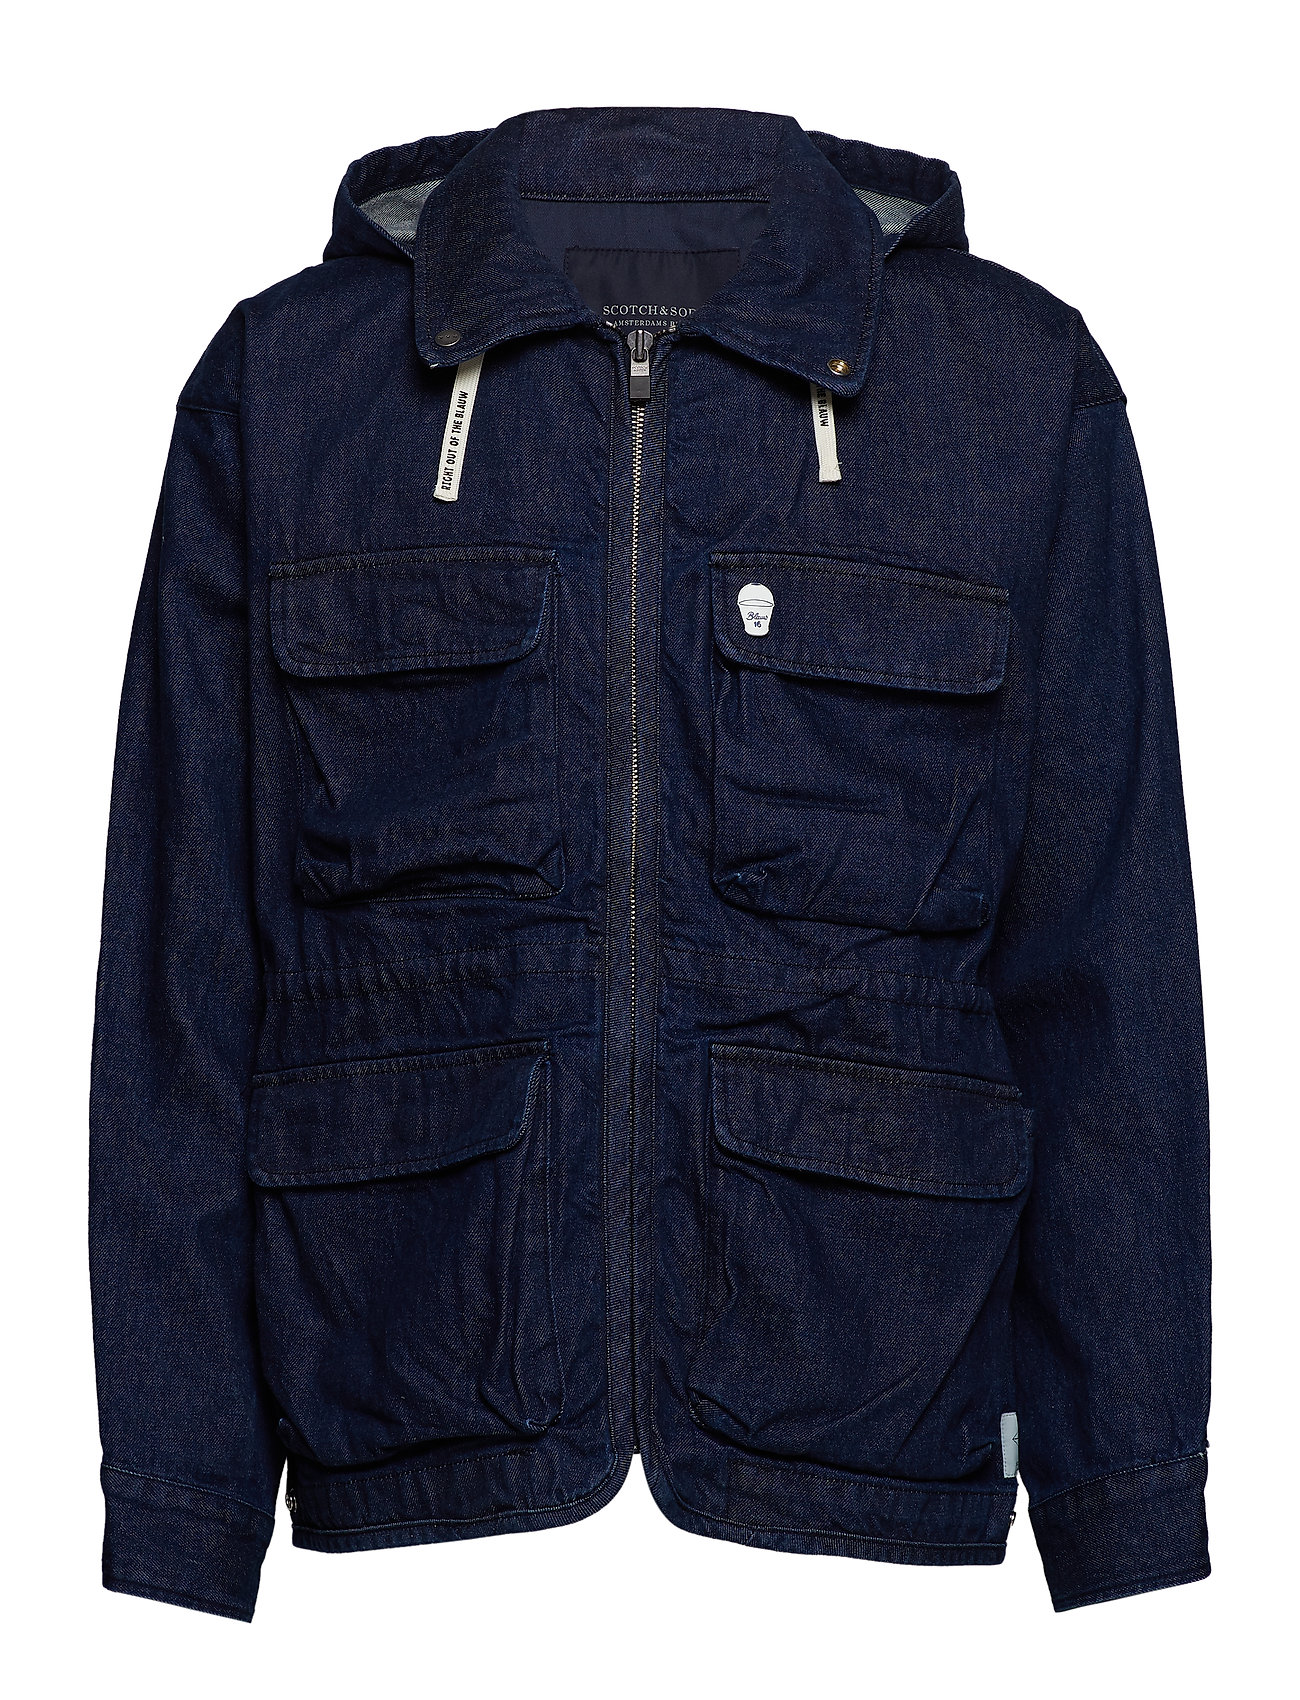 Scotch & Soda Oversized denim parka jacket with hood - DENIM BLUE